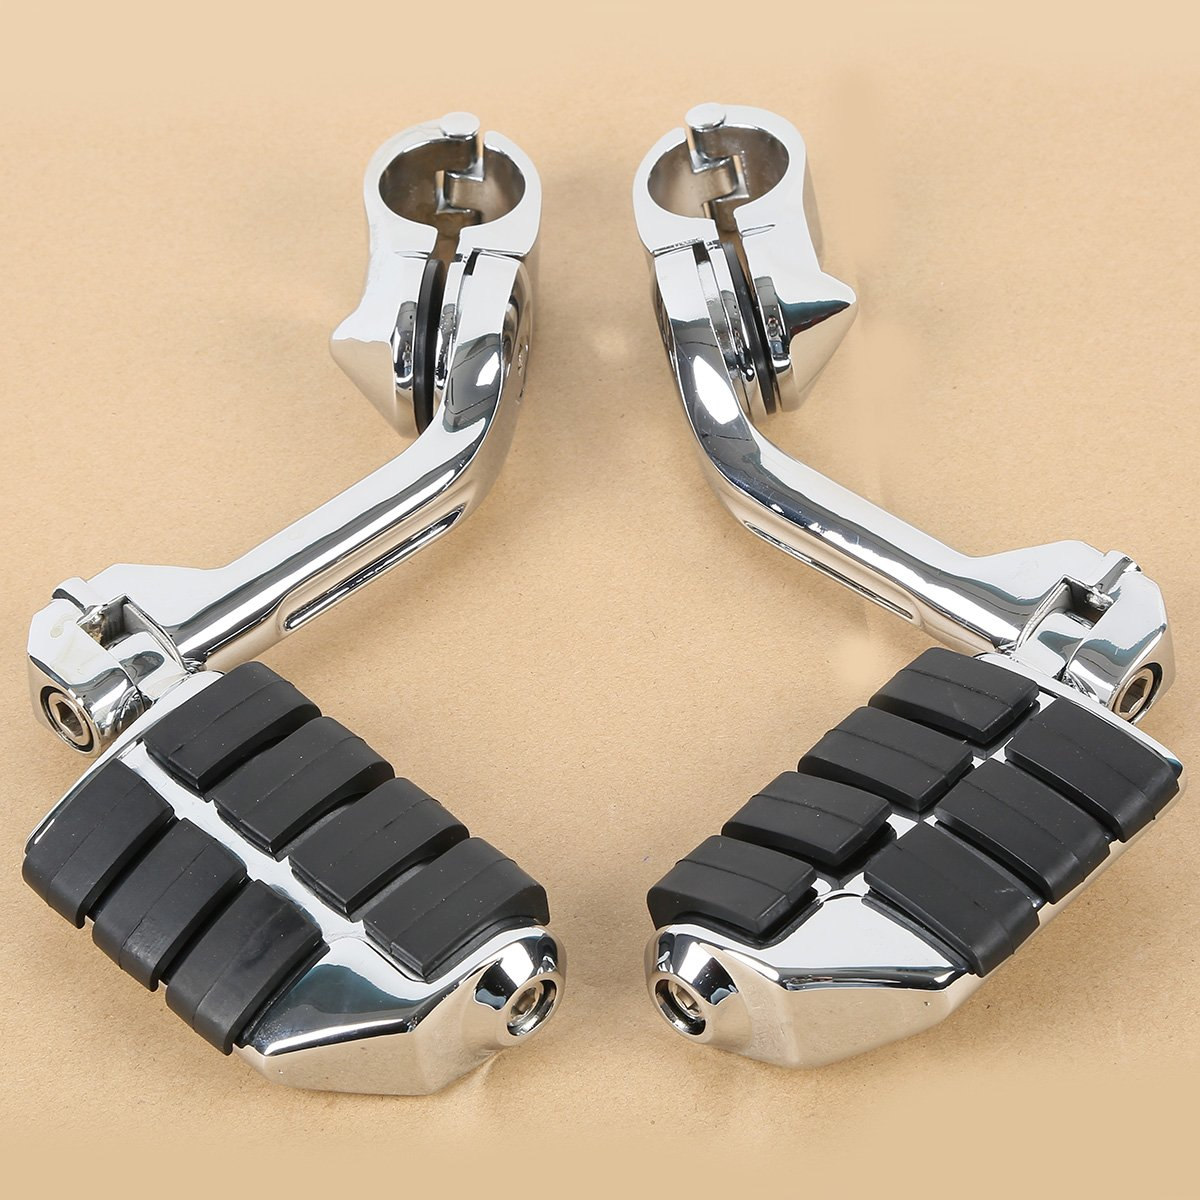 Tengchang Footrest Long Highway Motorcycles Foot Pegs Fit for Harley Electra Road King Street Glide 1-1//4 Bars